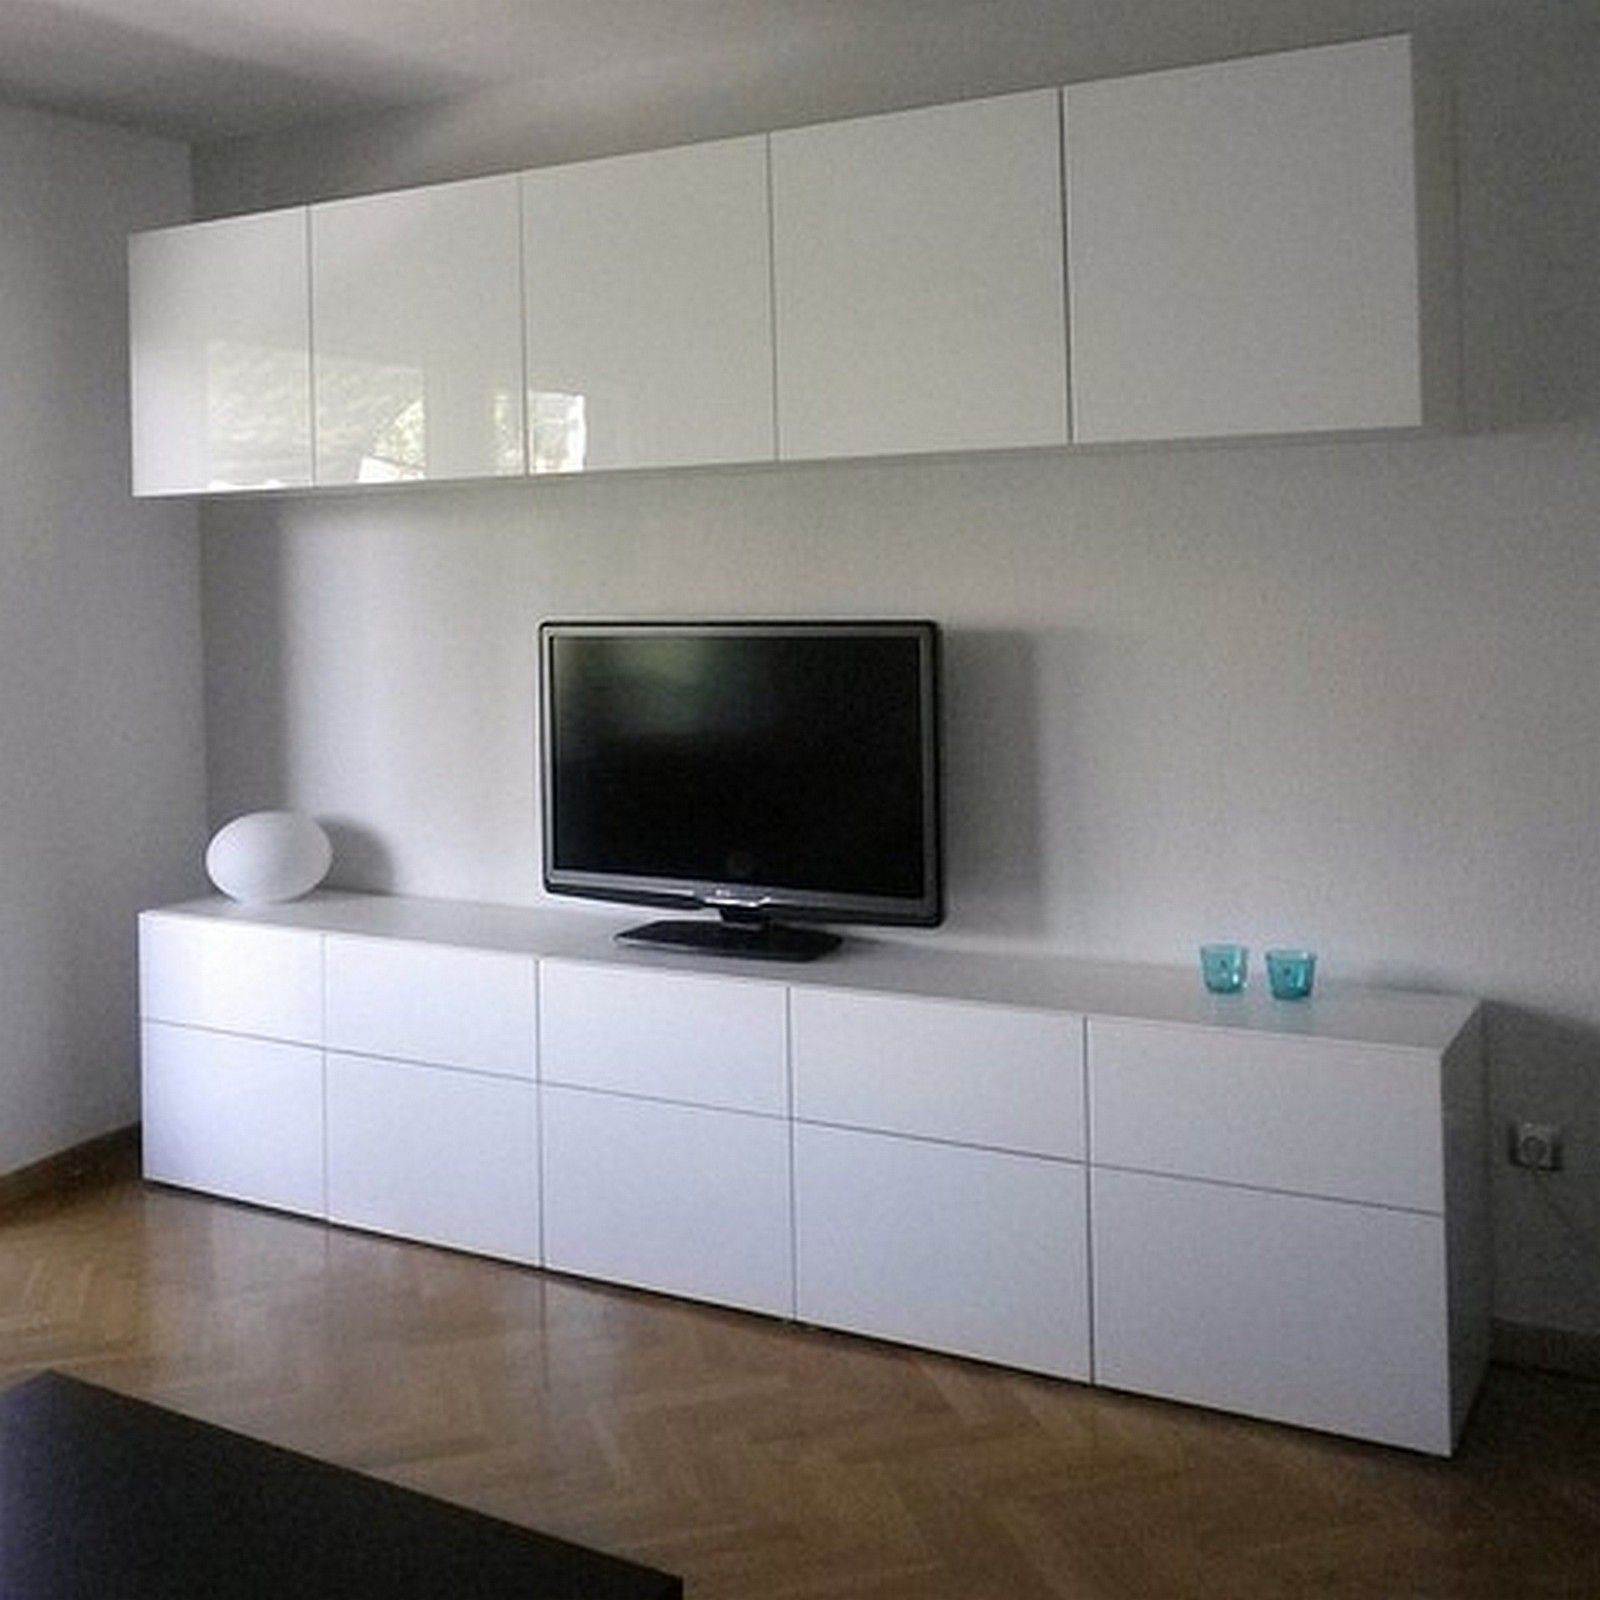 ikea besta cabinets with high gloss doors in living room wohnzimmer pinterest high gloss. Black Bedroom Furniture Sets. Home Design Ideas